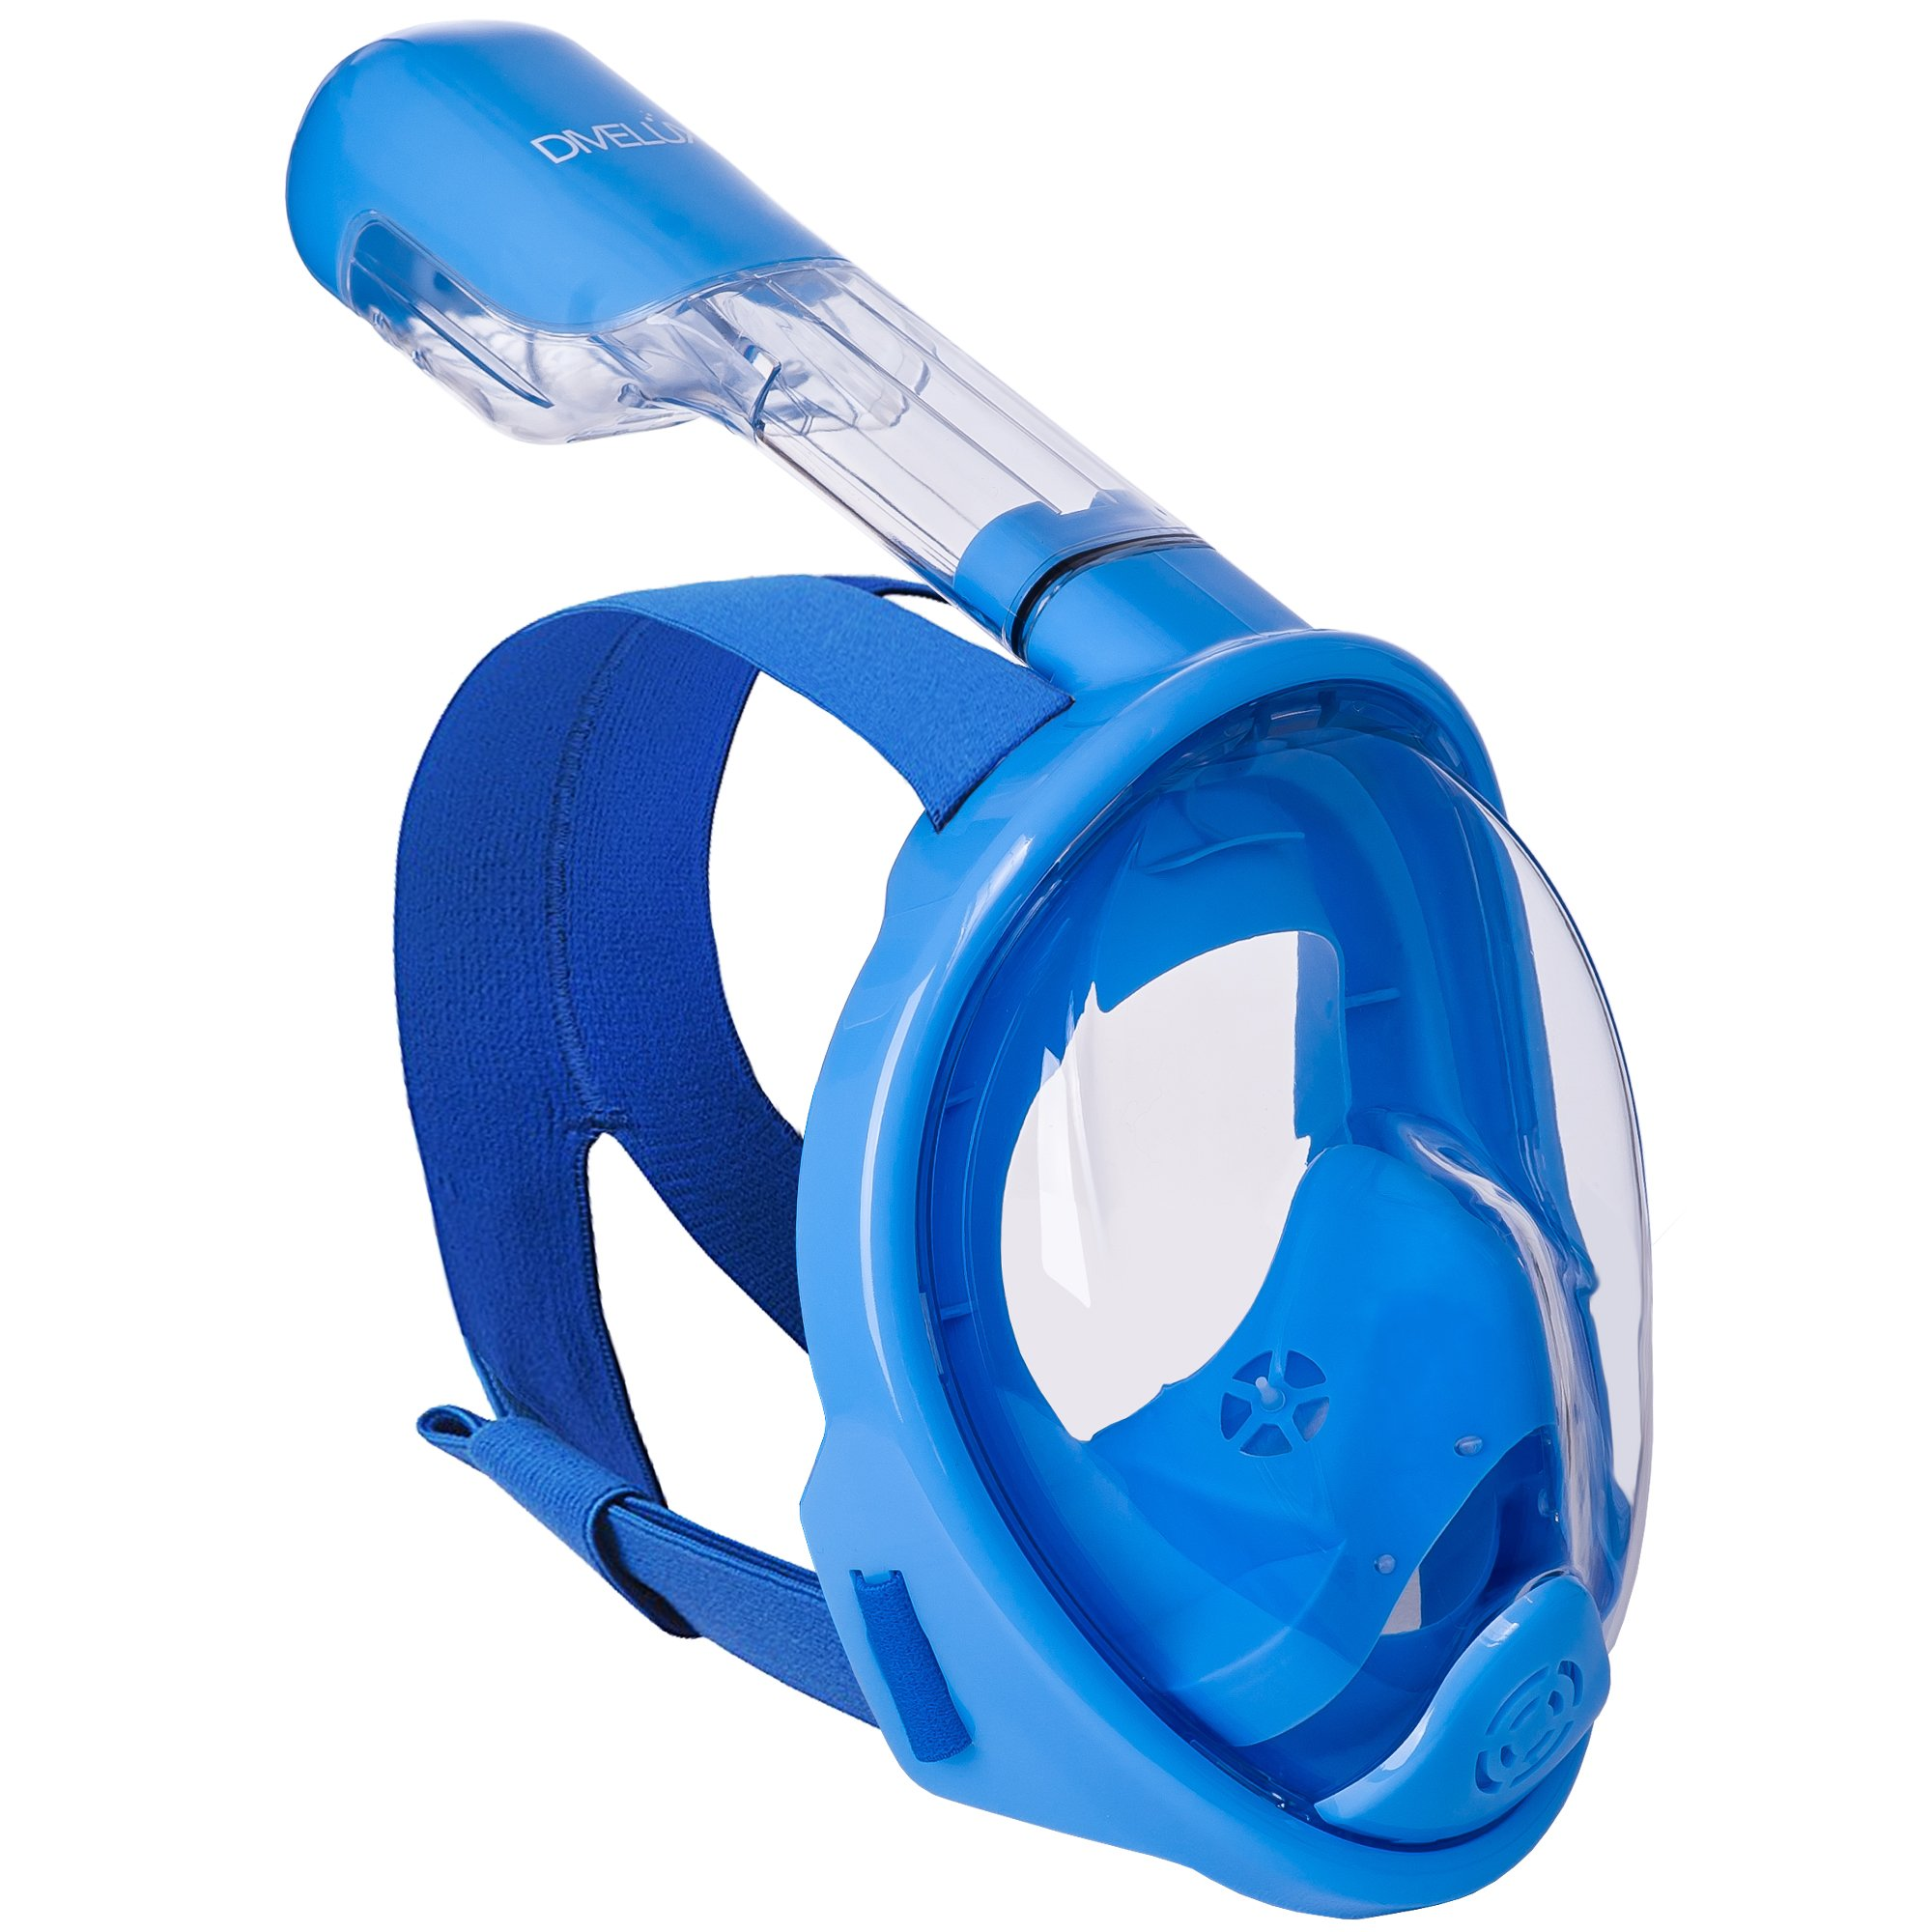 DIVELUX Snorkel Mask - Original Full Face Snorkeling and Diving Mask with 180° Panoramic Viewing - Longer Ventilation Pipe, Watertight, Anti Fog & Anti Leak Technology, for Kids (Blue, XS)